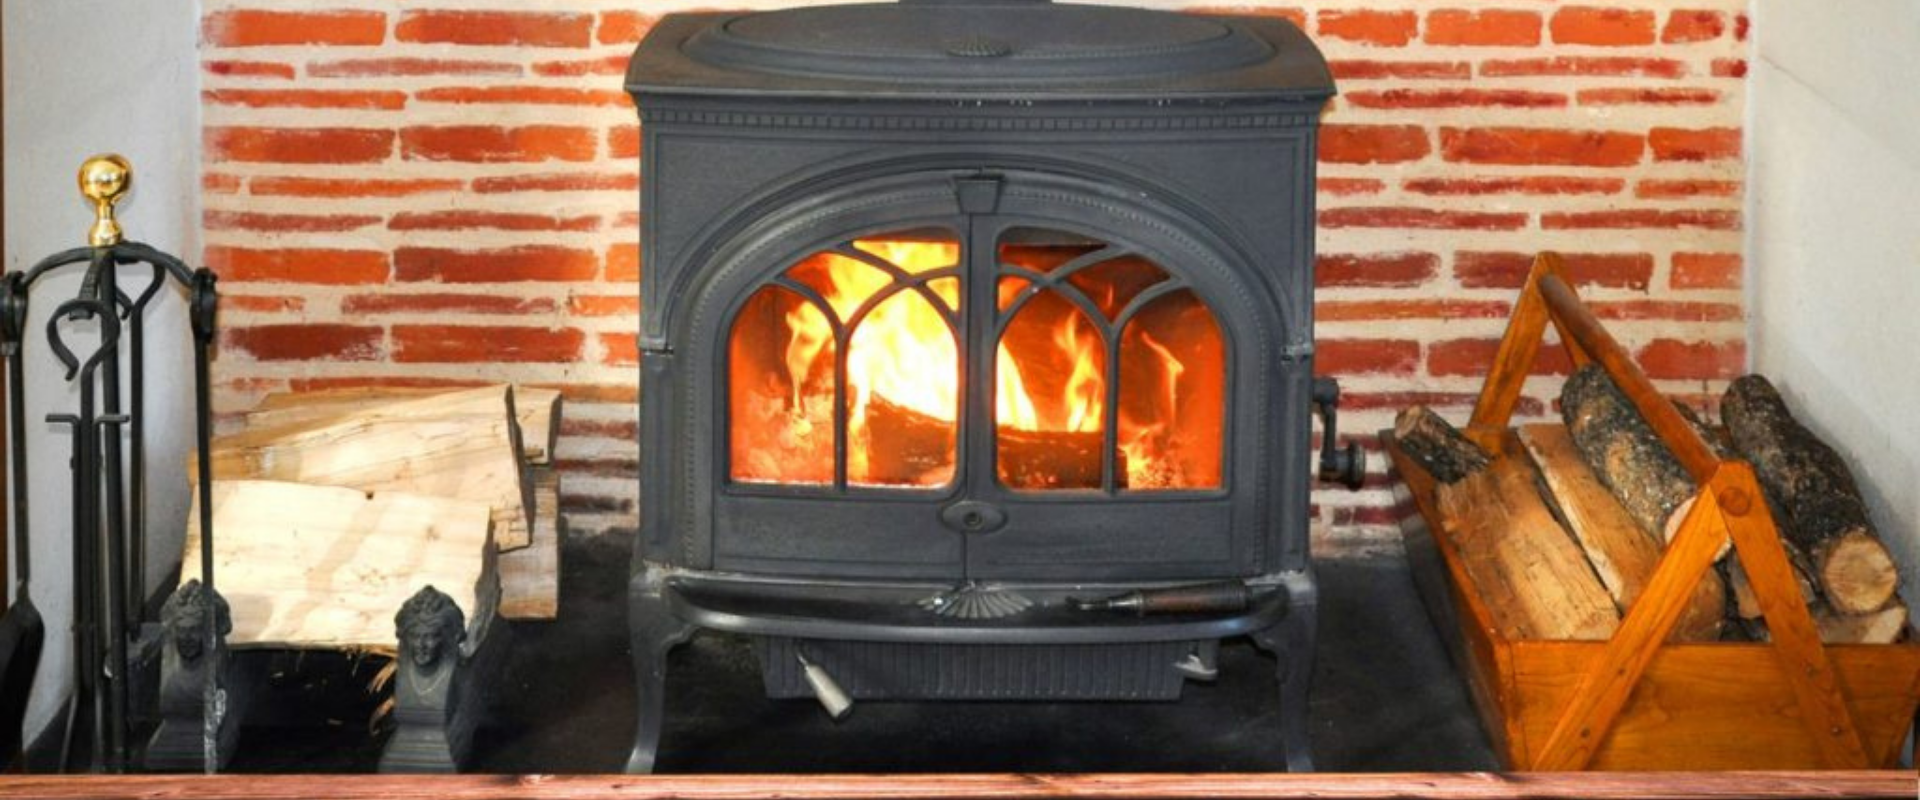 Stoves from thermocrete